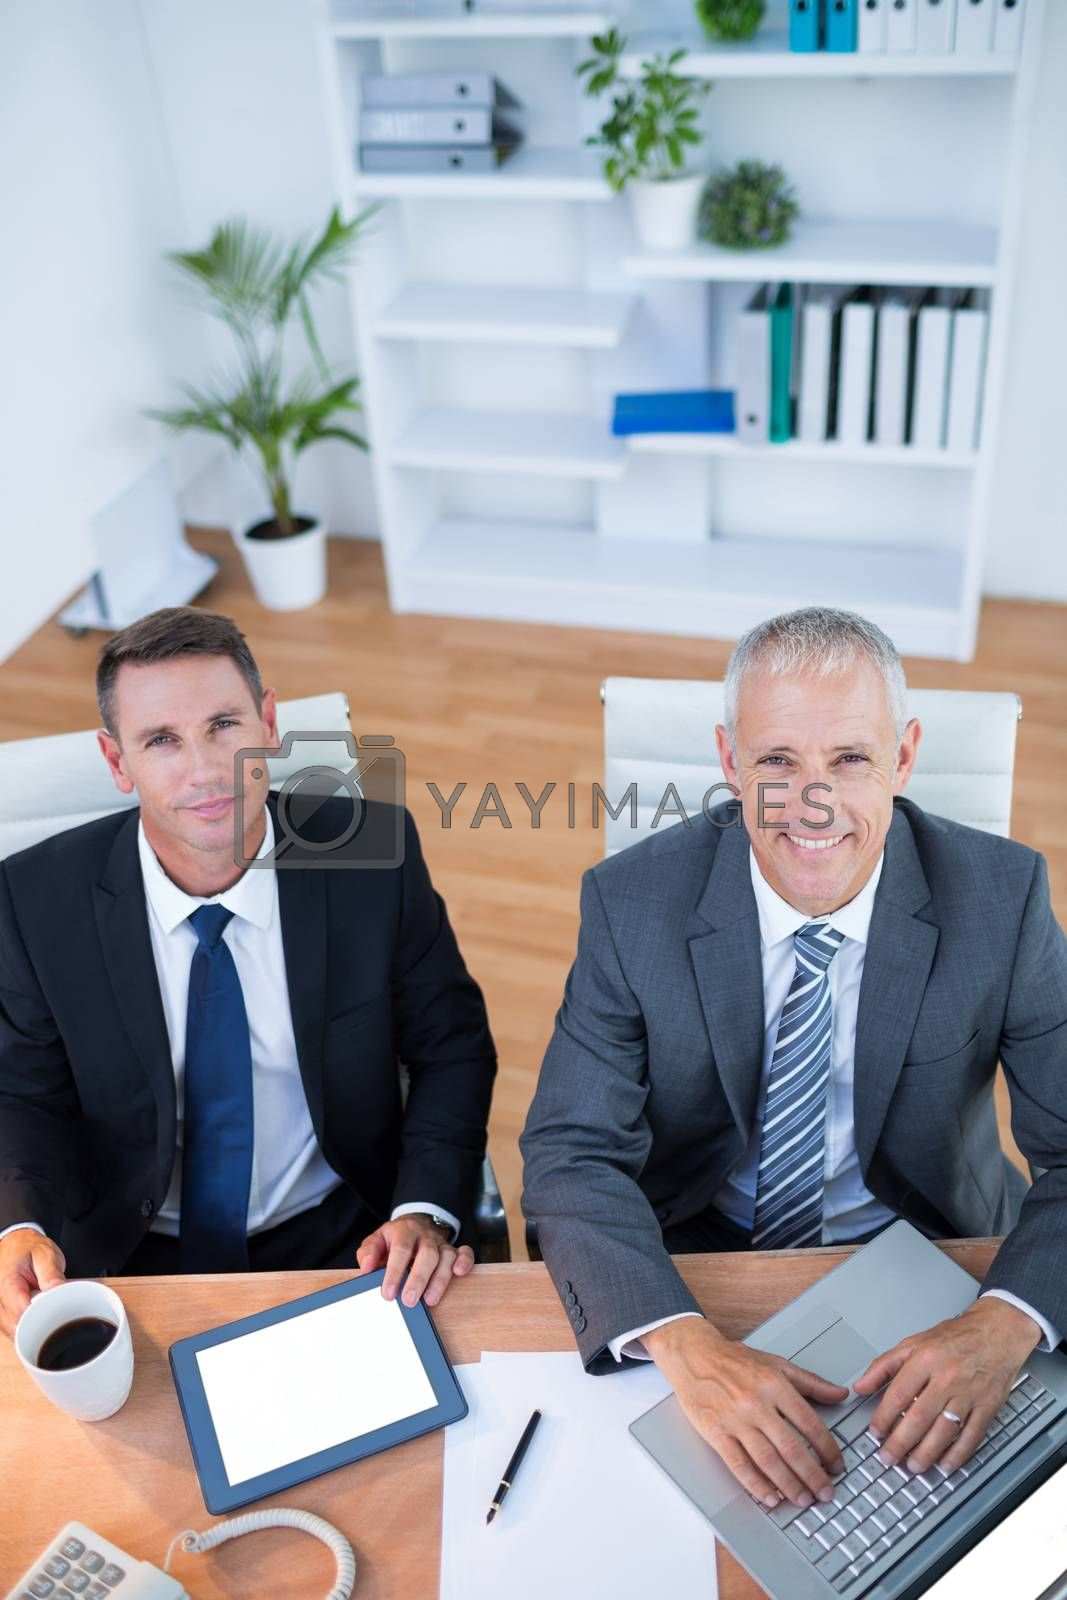 Royalty free image of Happy colleagues working together on digital tablet and laptop  by Wavebreakmedia